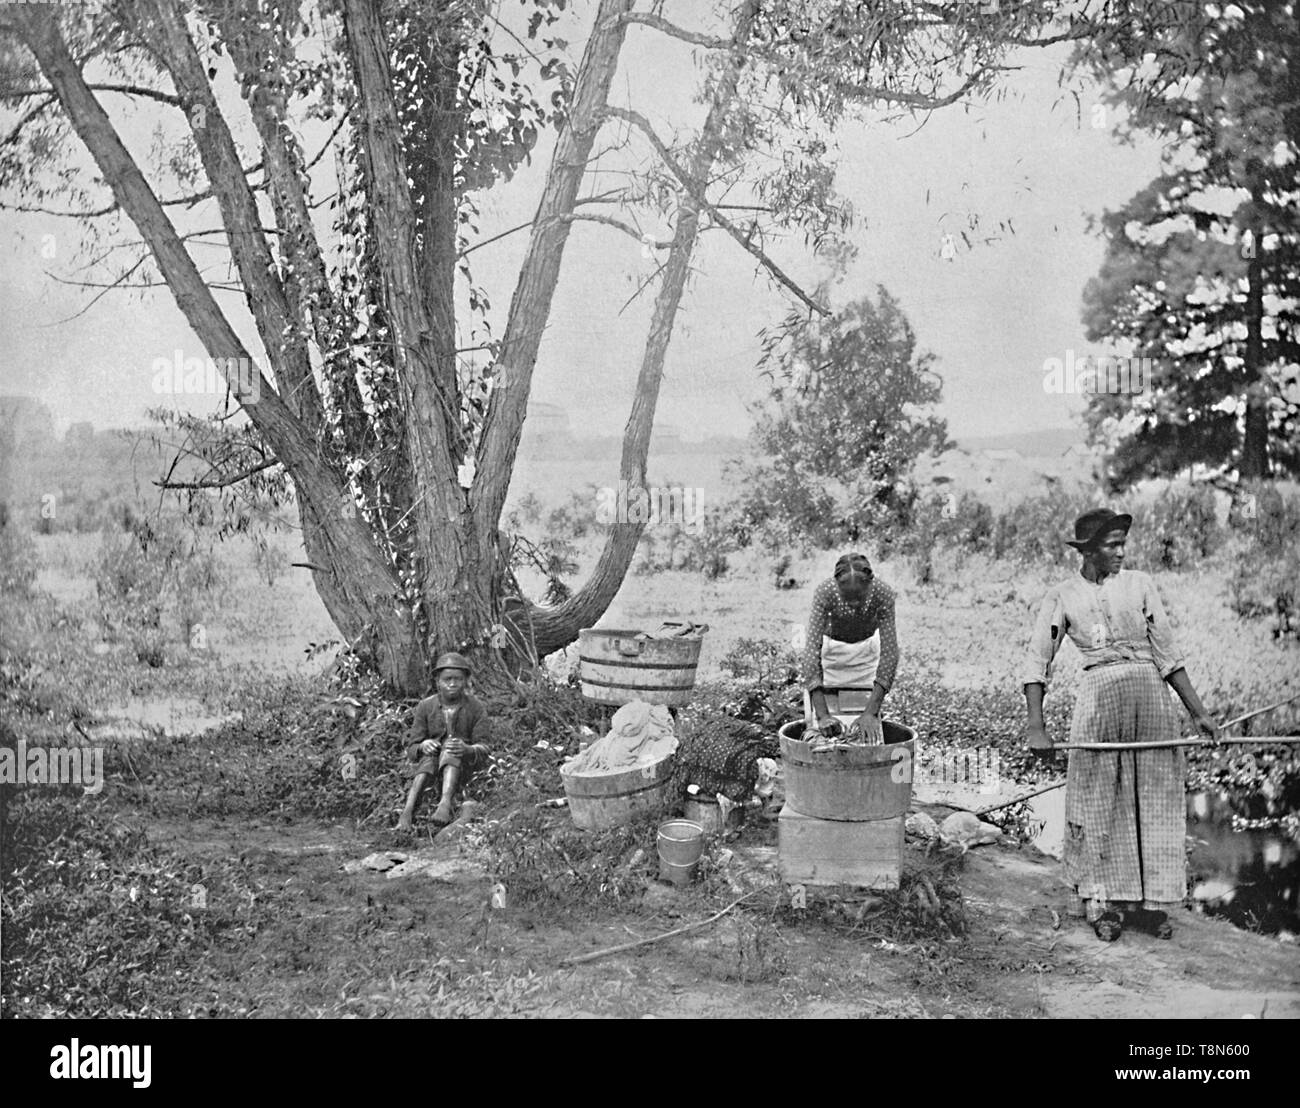 """'Washerwomen, El Paso, Texas', c1897. From """"A Tour Through the New World America"""", by Prof. Geo. R. Cromwell. [C. N. Greig & Co., London, c1897] - Stock Image"""